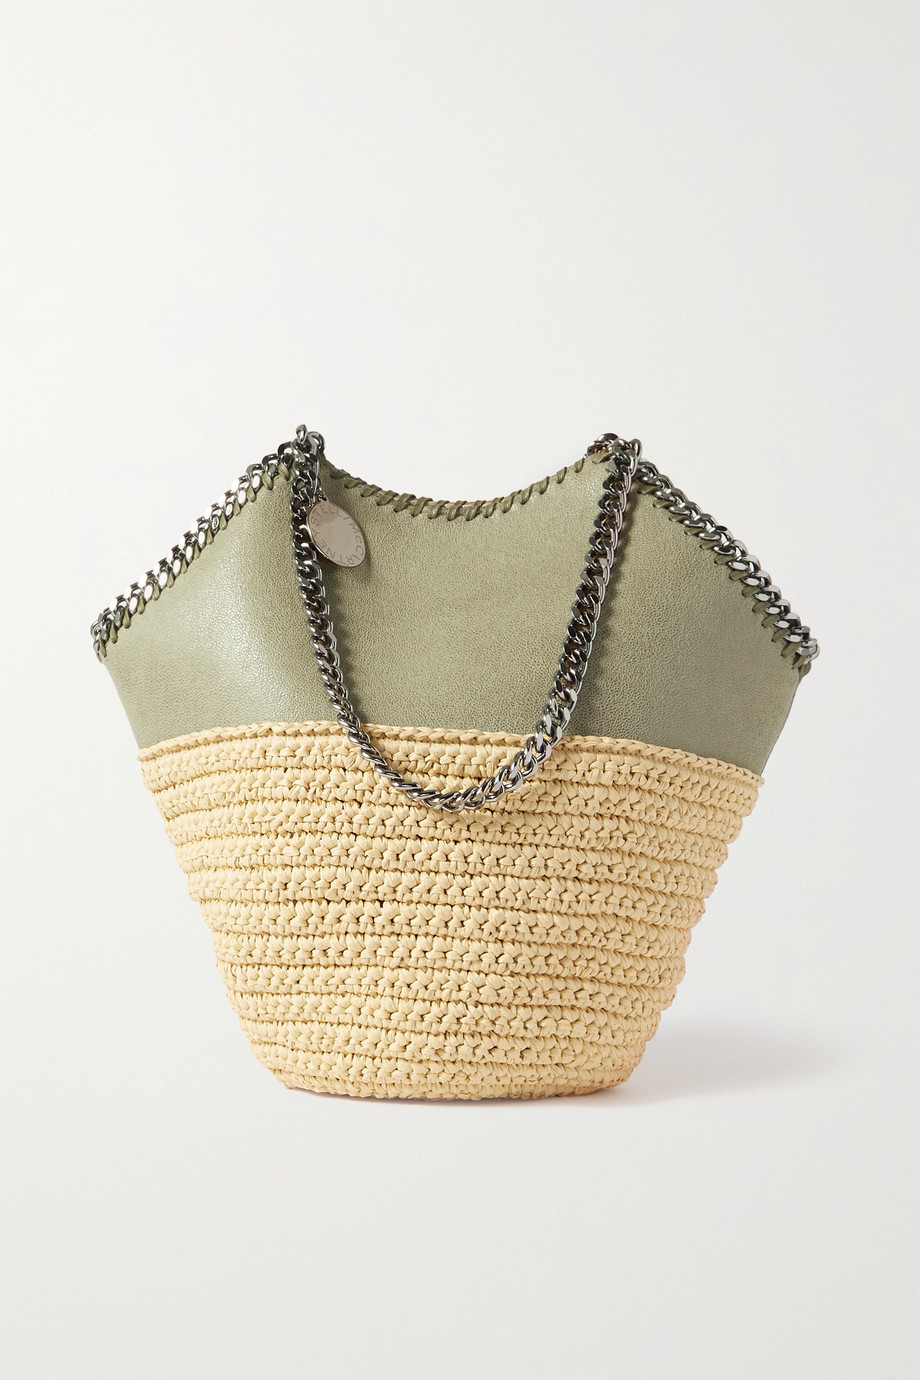 스텔라 맥카트니 Stella McCartney The Falabella medium vegetarian brushed-leather and raffia tote,Green